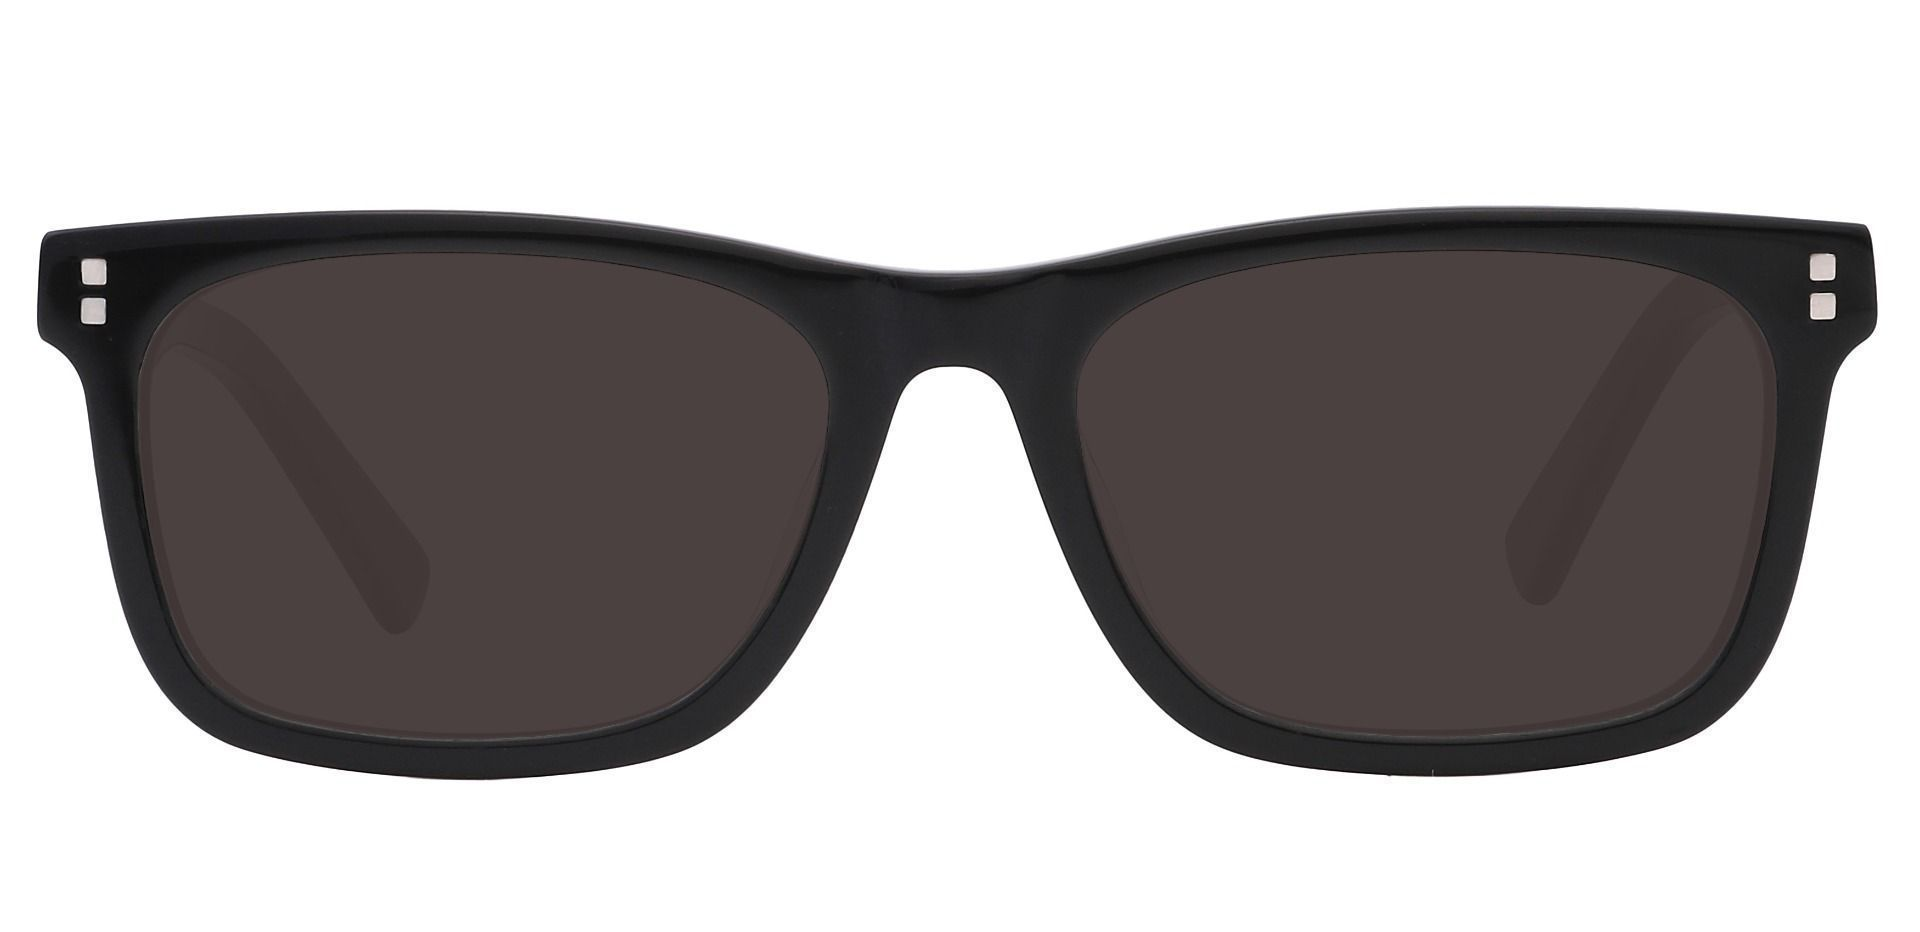 Liberty Rectangle Lined Bifocal Sunglasses - Black Frame With Gray Lenses